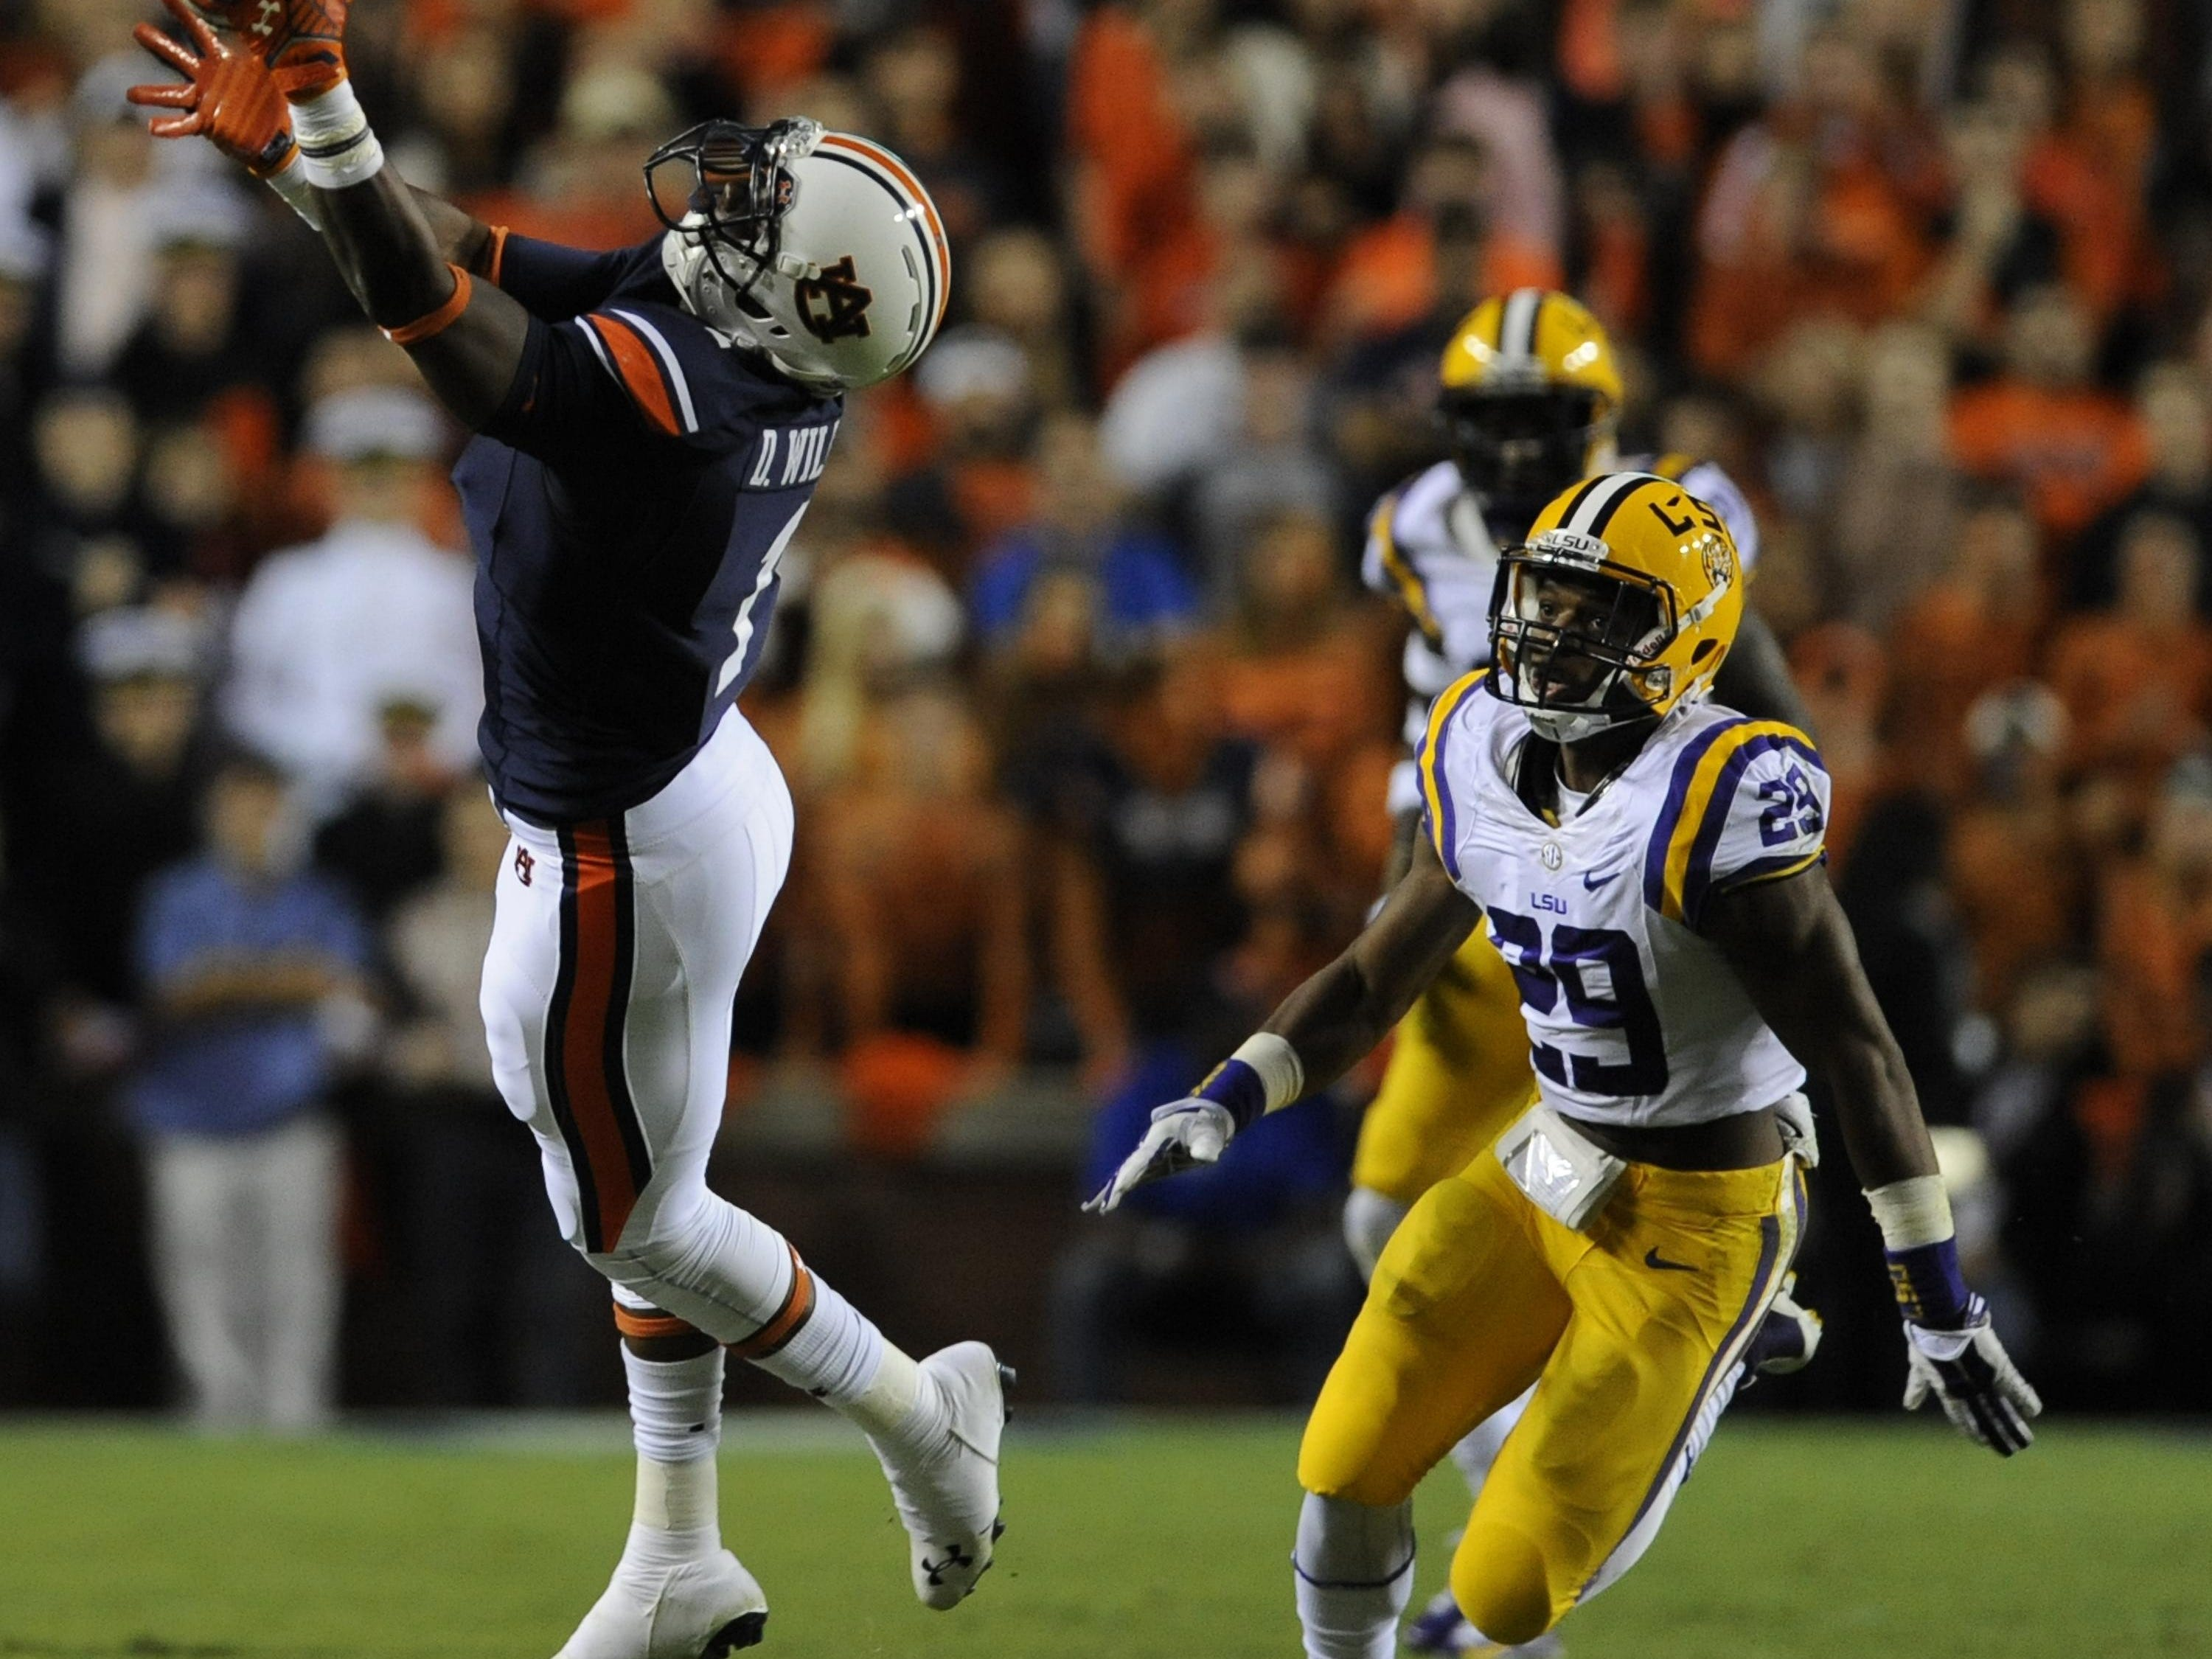 Auburn wide receiver D'haquille Williams hauls in a long reception against LSU safety Rickey Jefferson at Jordan-Hare Stadium on Oct. 4, 2014.